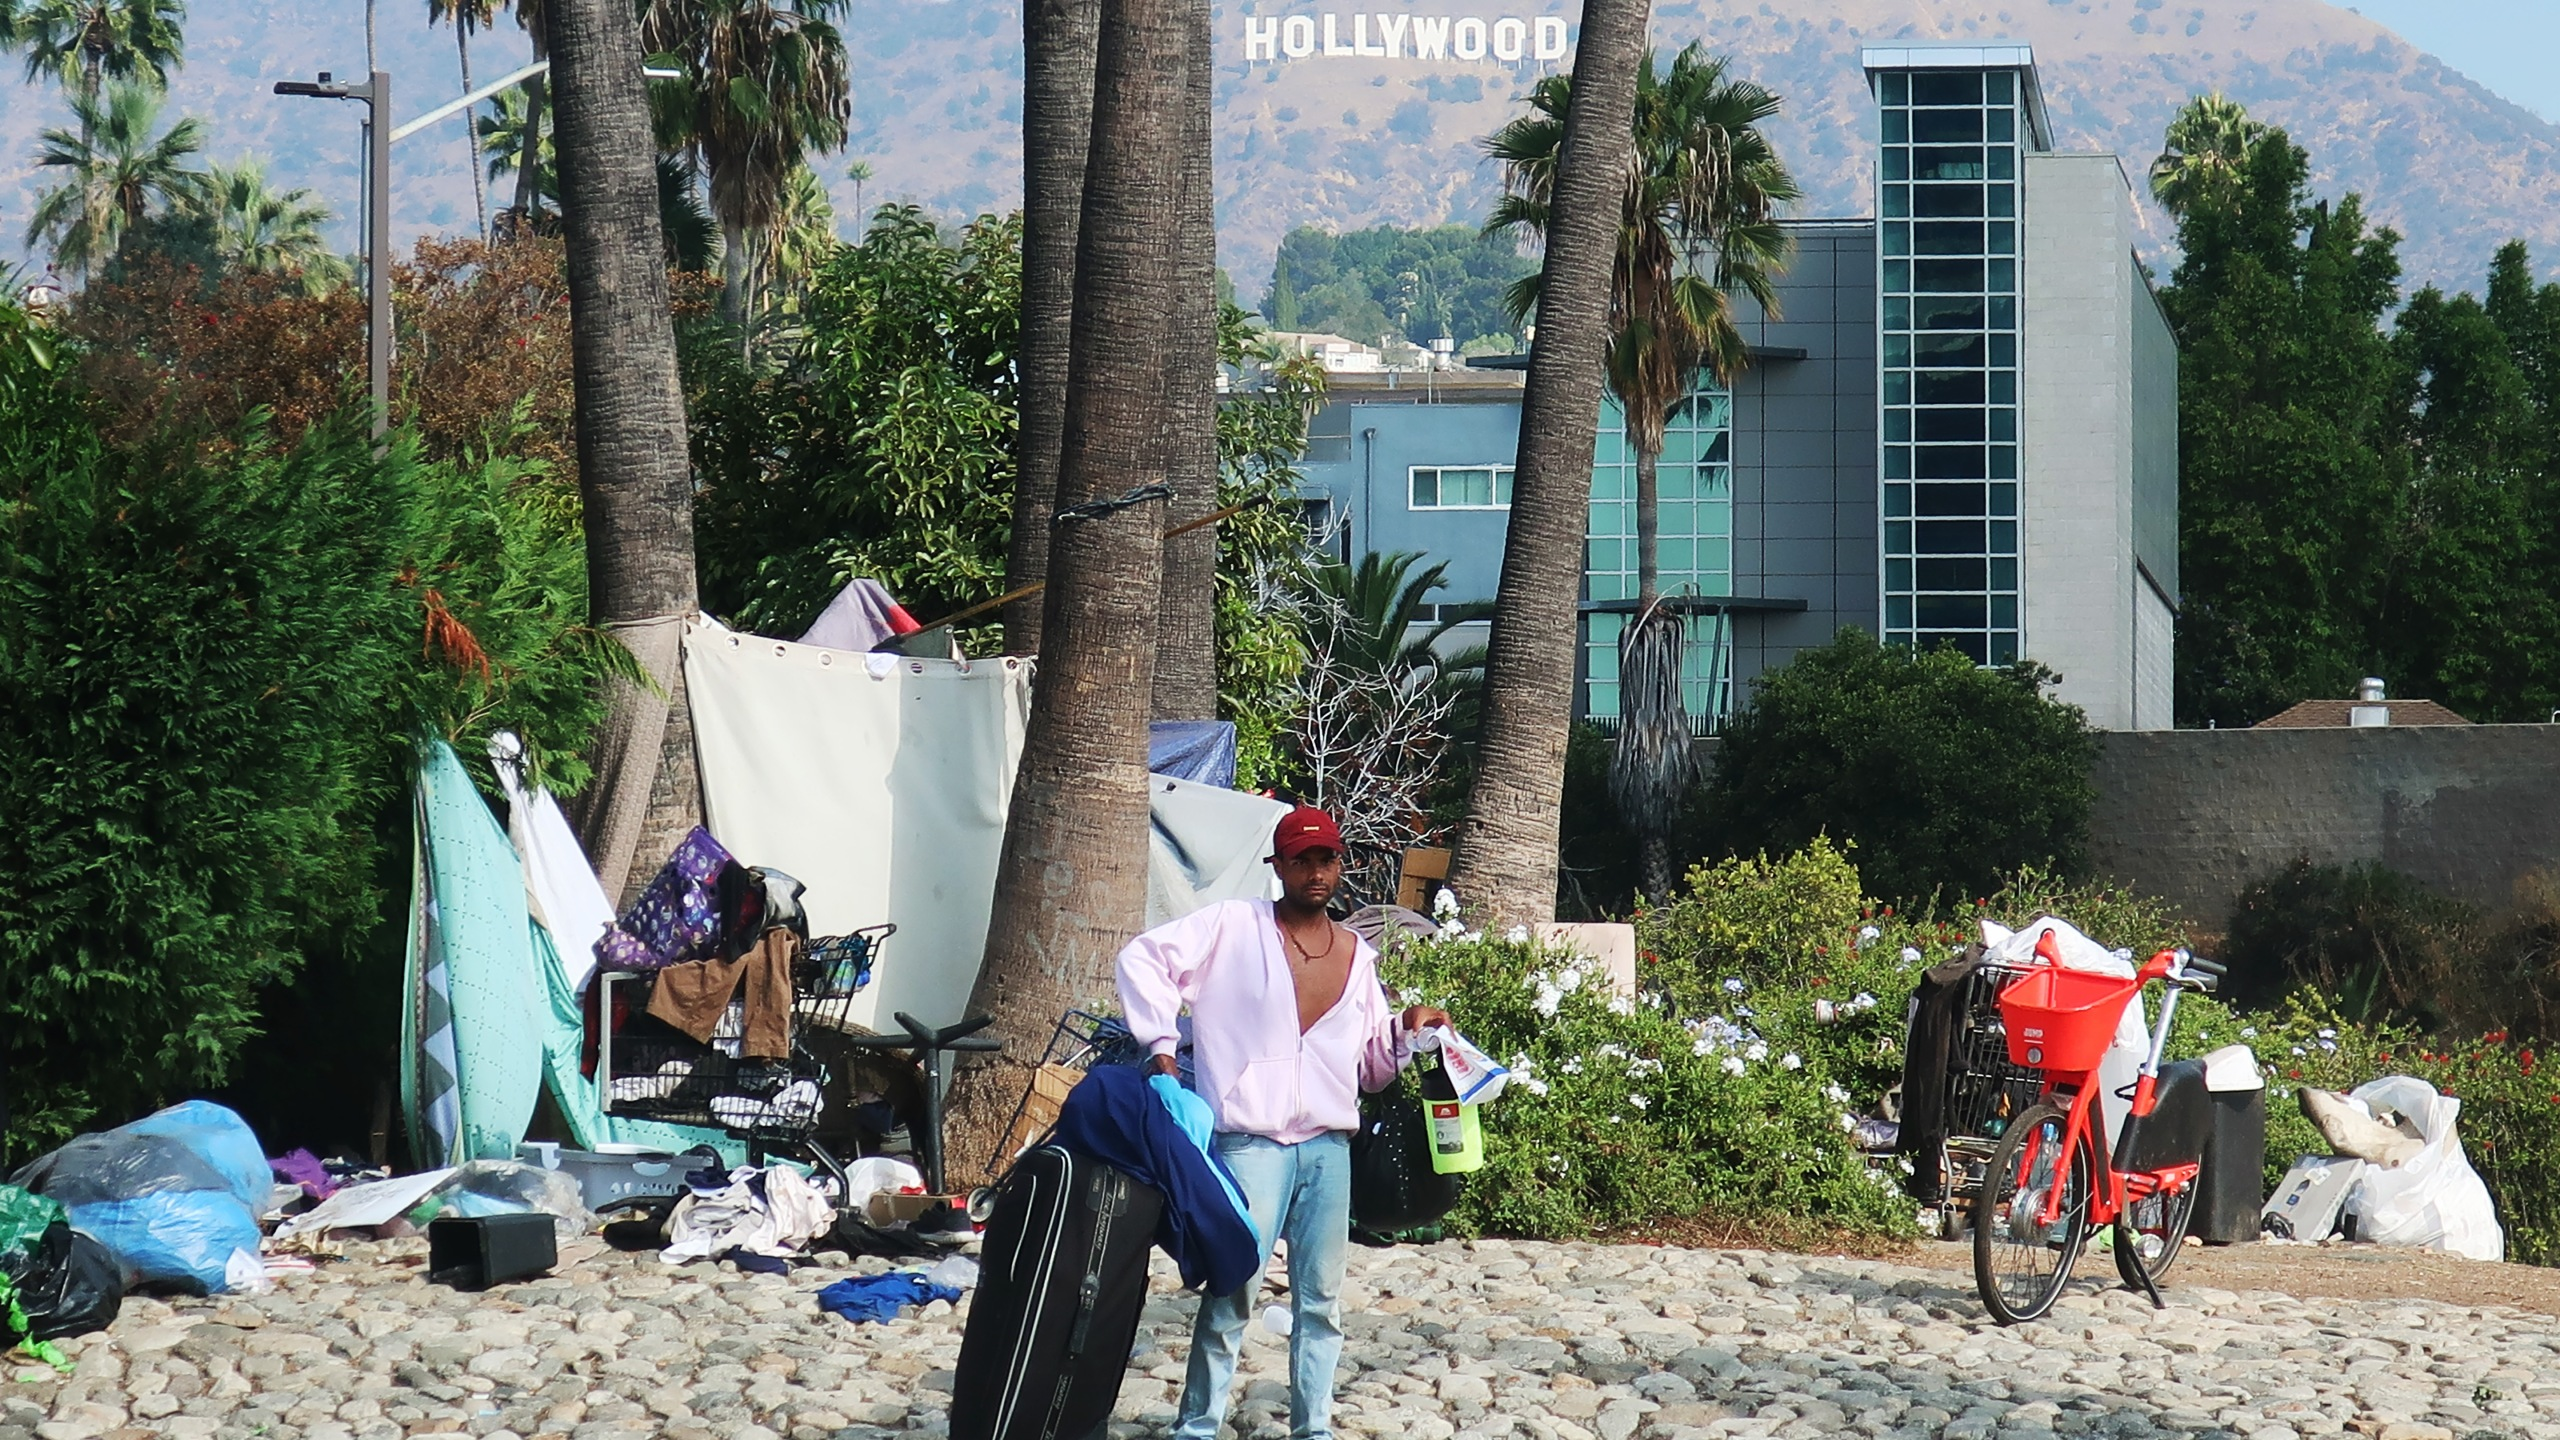 A man stands in front of a homeless encampment, with the Hollywood sign in the background, on Sept. 23, 2019. (Credit: Mario Tama / Getty Images)